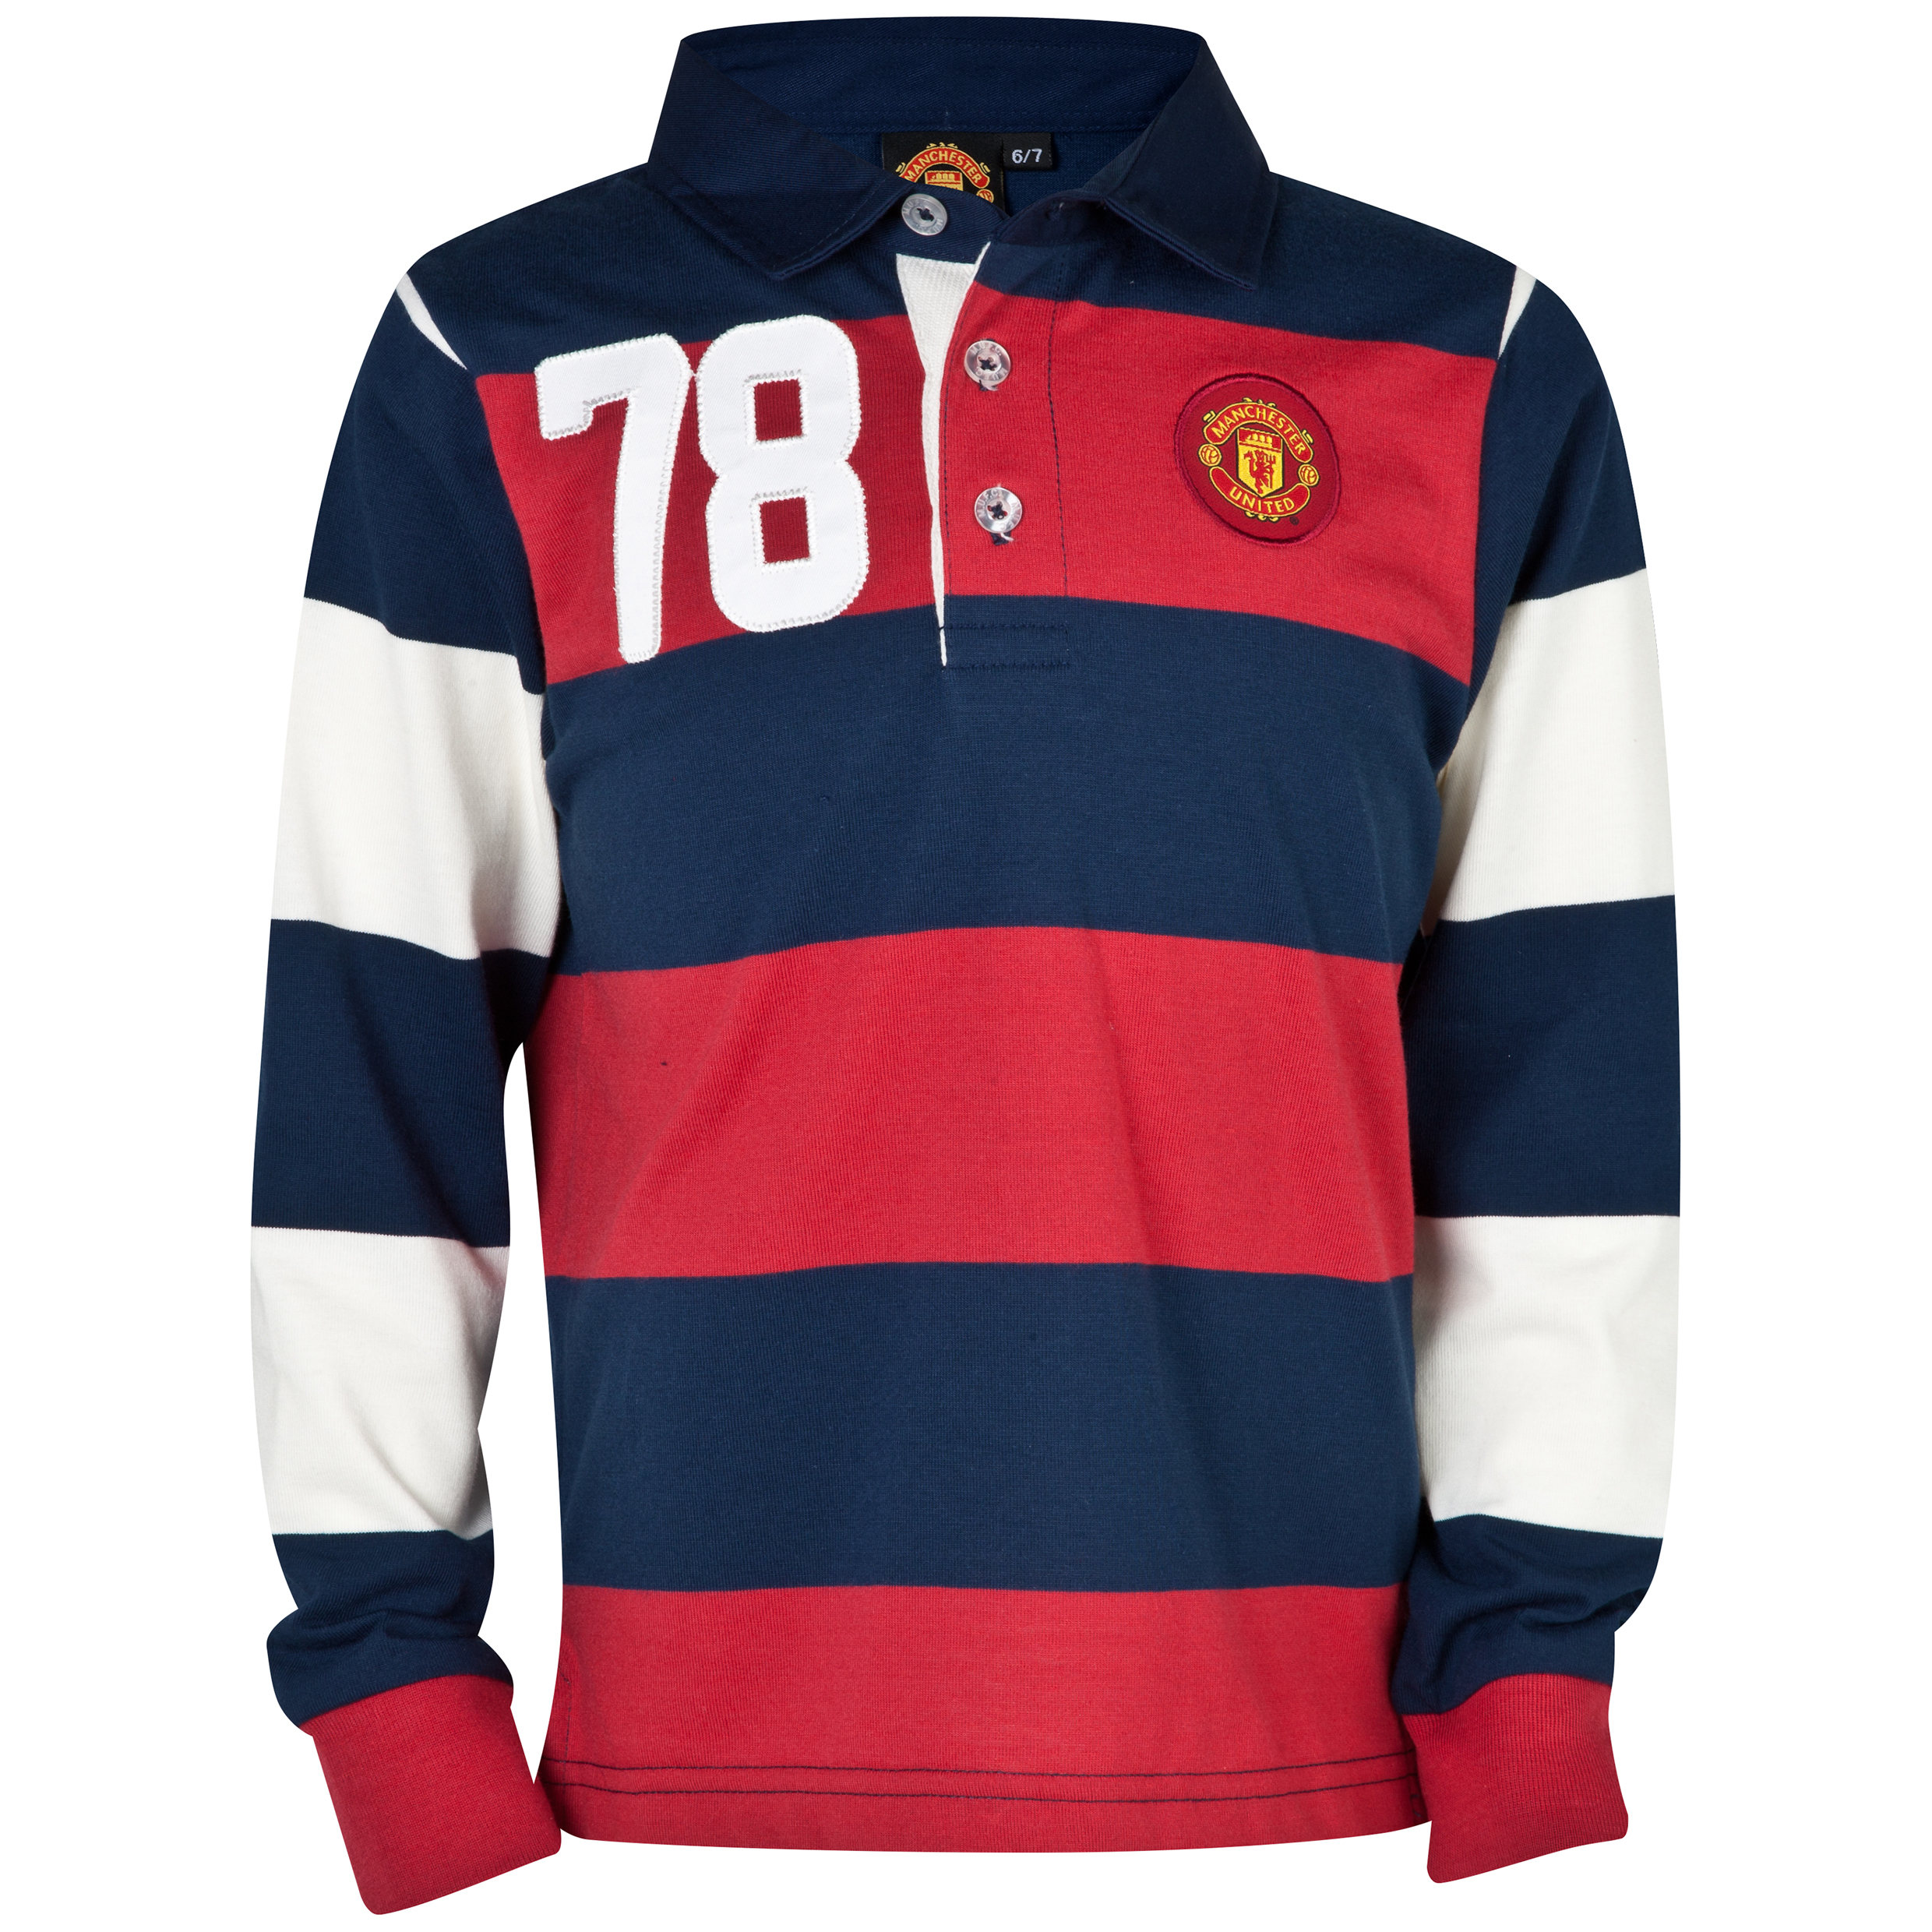 Manchester United 78 Rugby Shirt  - Infant Boys Navy